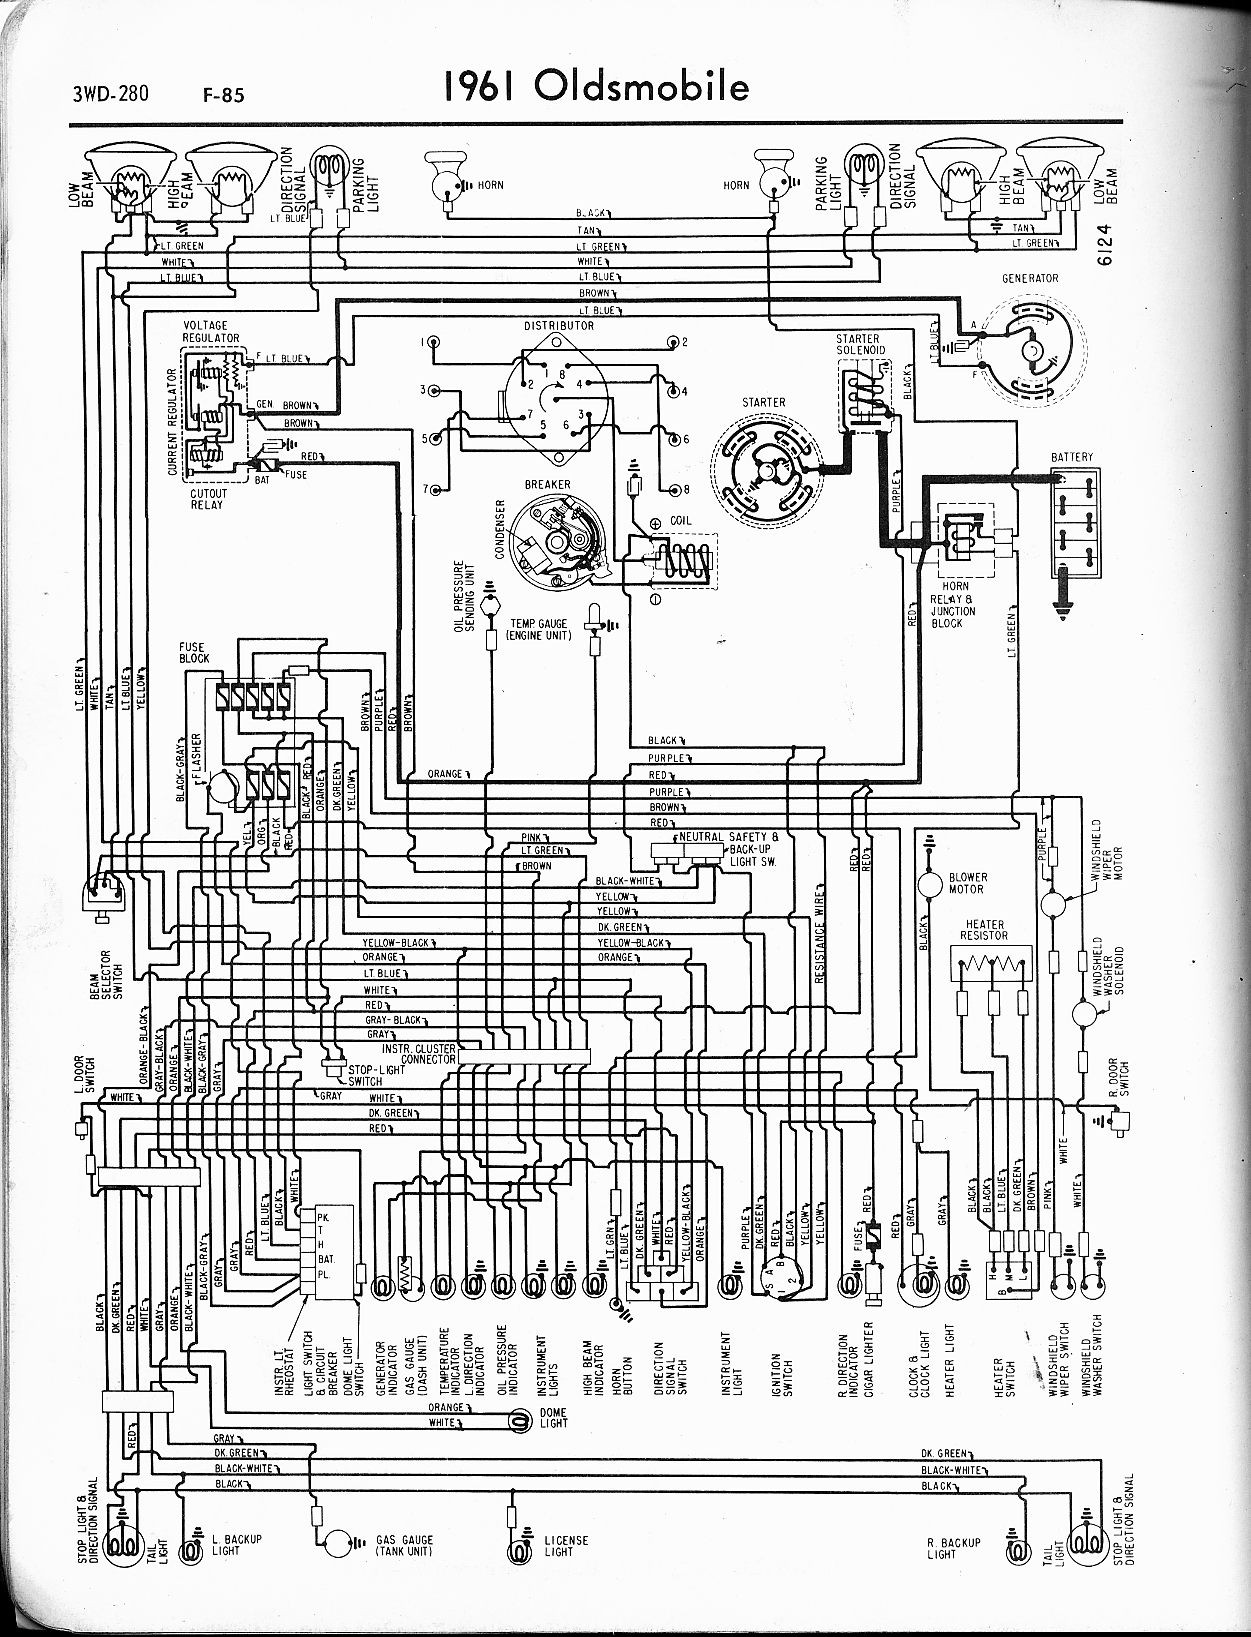 DIAGRAM] 1967 Oldsmobile Wire Diagram FULL Version HD Quality Wire Diagram  - BMARIQDIAGRAMS.SKYWISE.ITDiagram Database